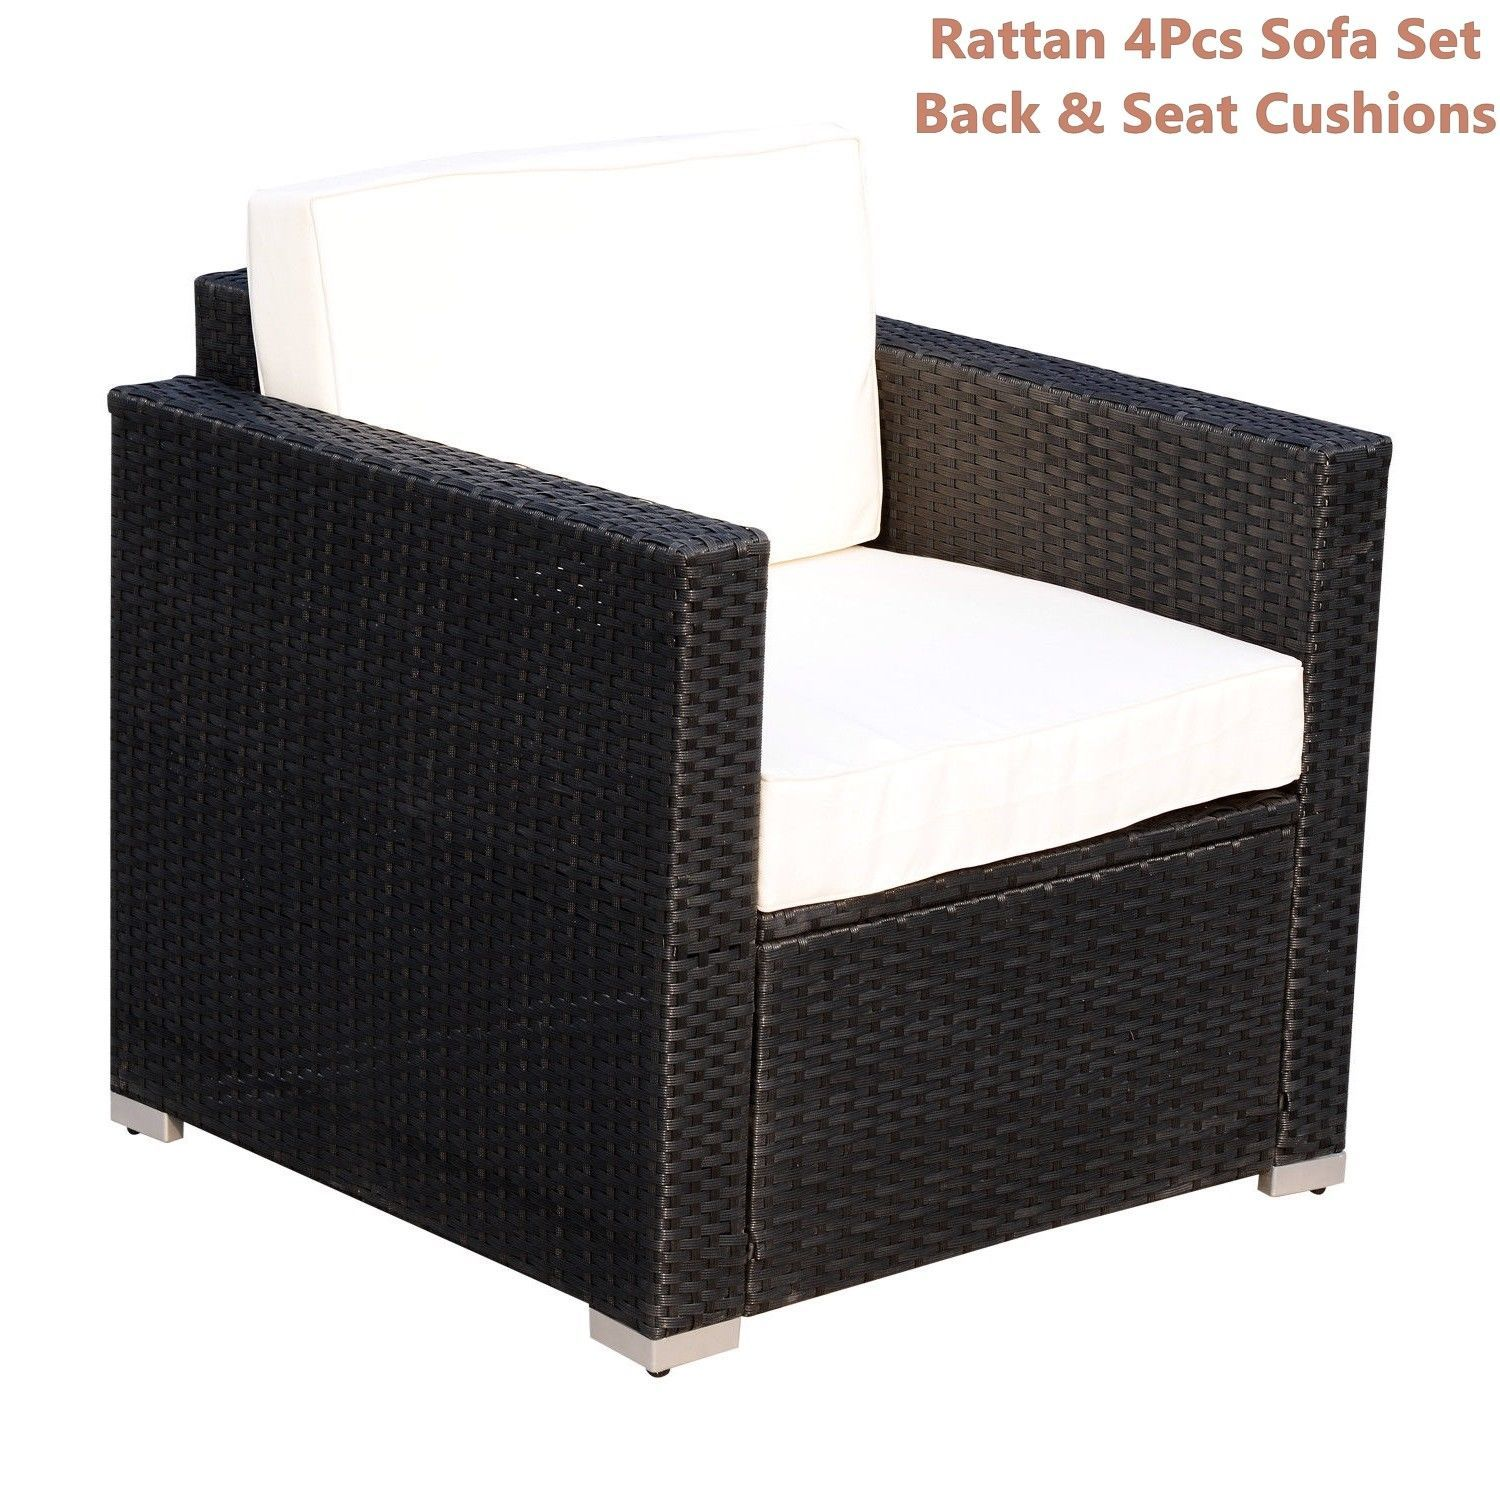 Rattan Sofa Cushioned Set Garden Wicker Glass Top Table Armchairs 4Pcs Black New image 9